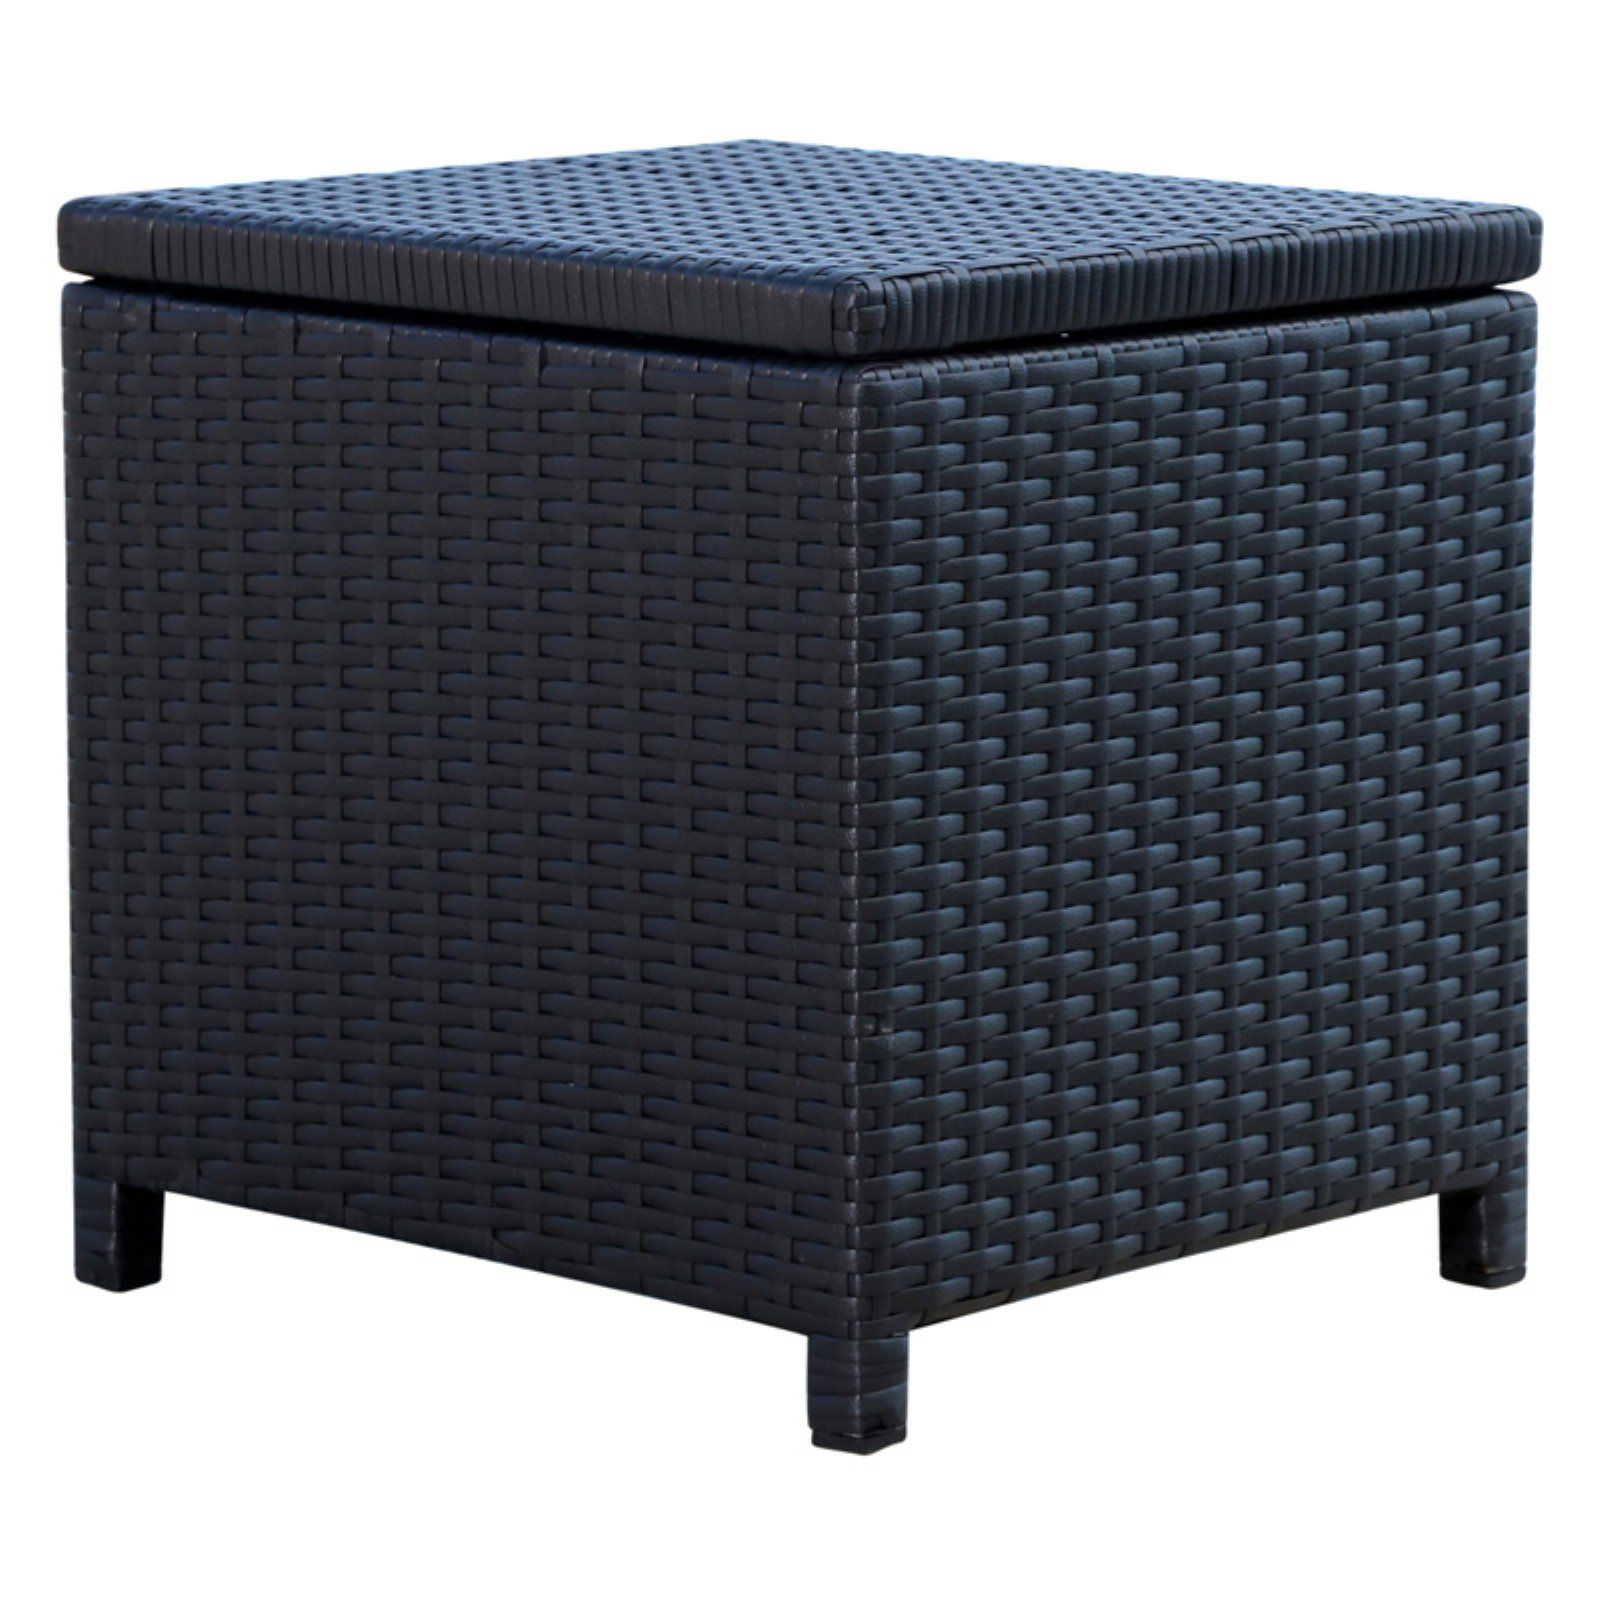 Pleasing Abbyson Chase Outdoor Wicker Storage Ottoman Products In Machost Co Dining Chair Design Ideas Machostcouk